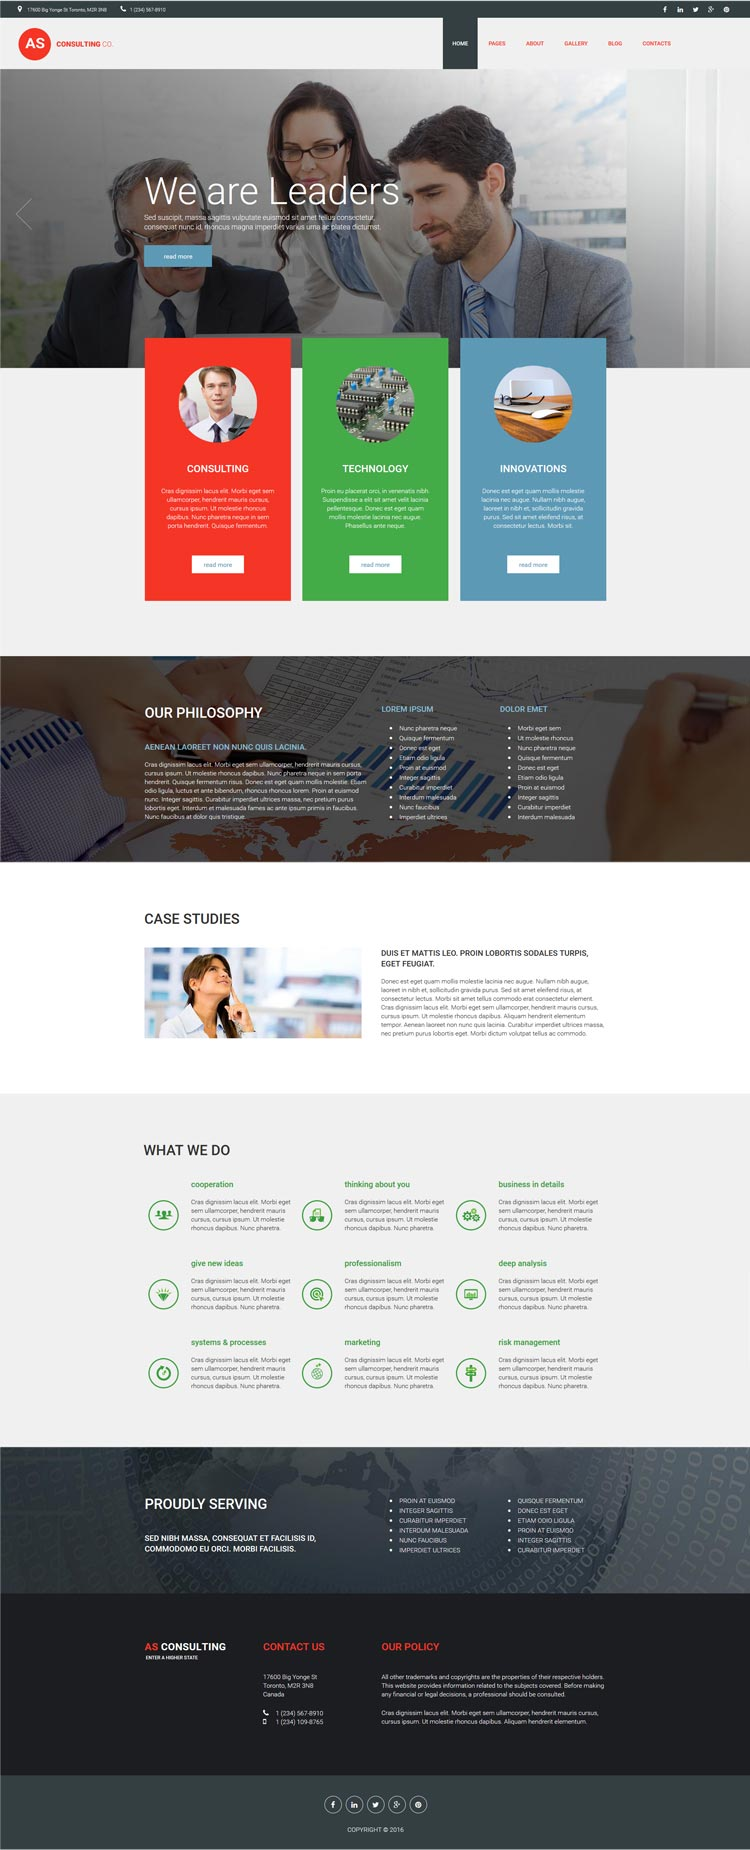 Consulting Joomla! template